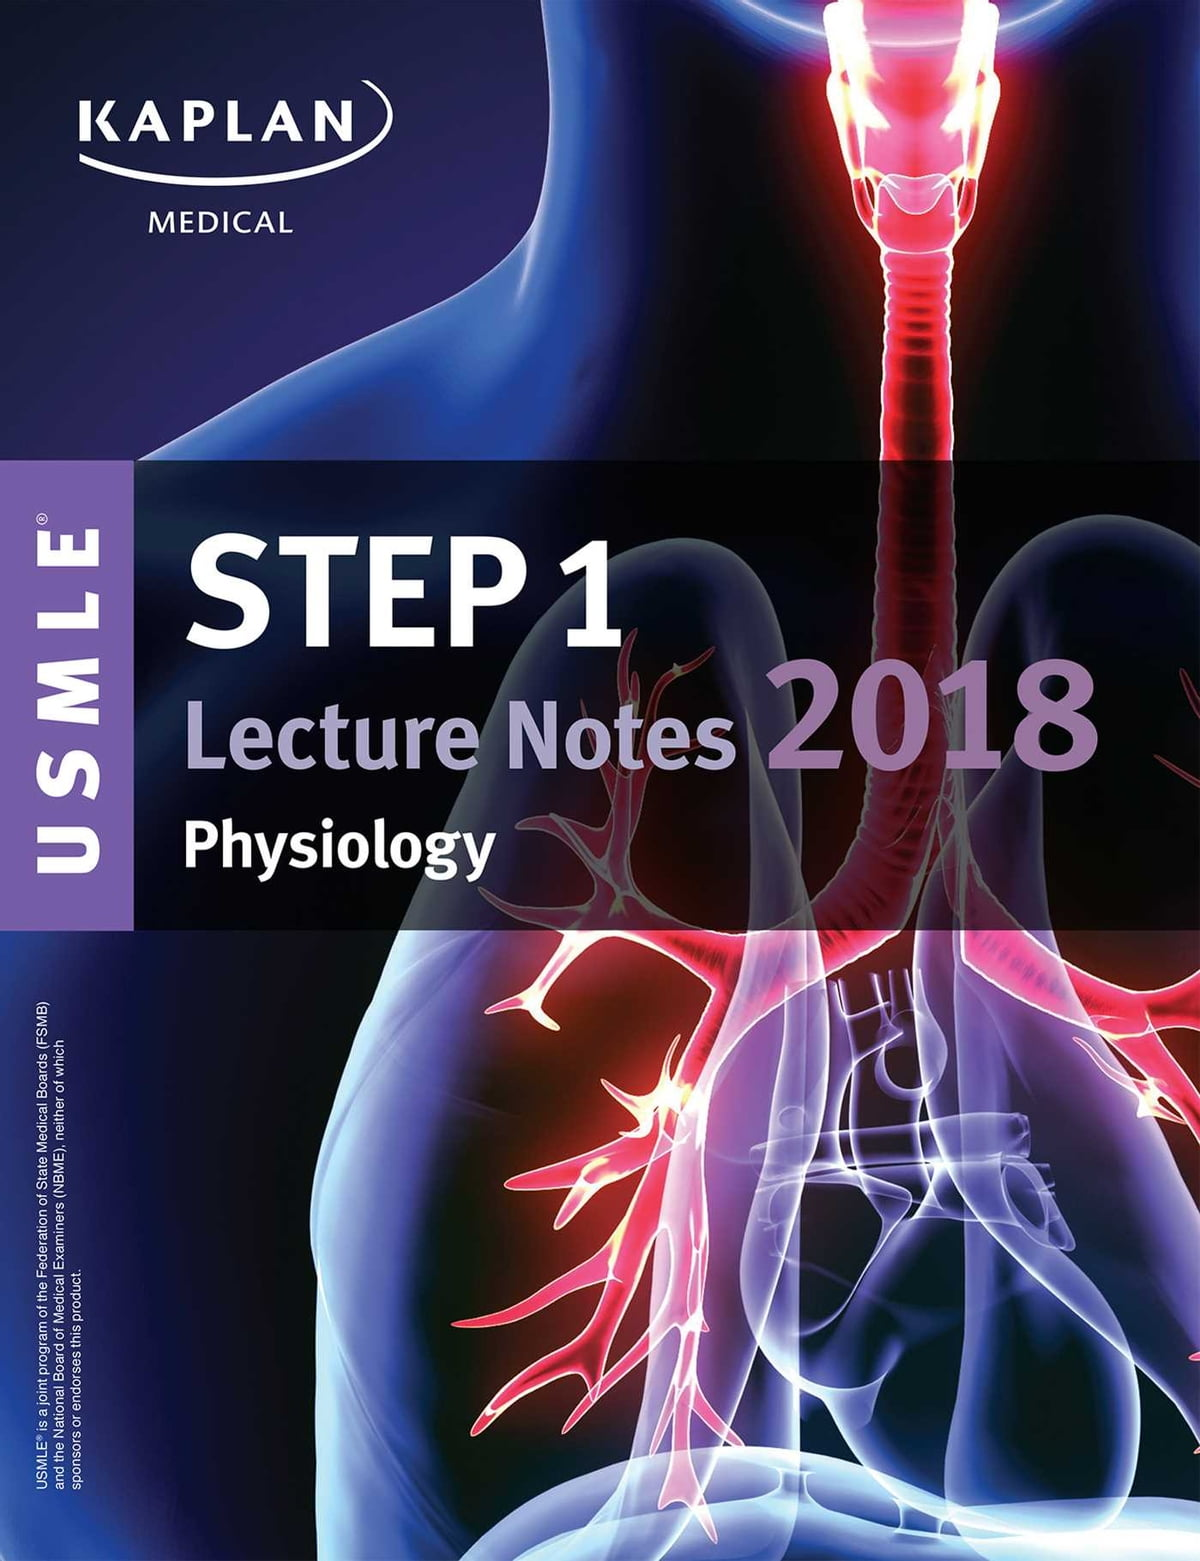 Usmle Step 1 Lecture Notes 2018 Physiology Ebook By Kaplan Medical